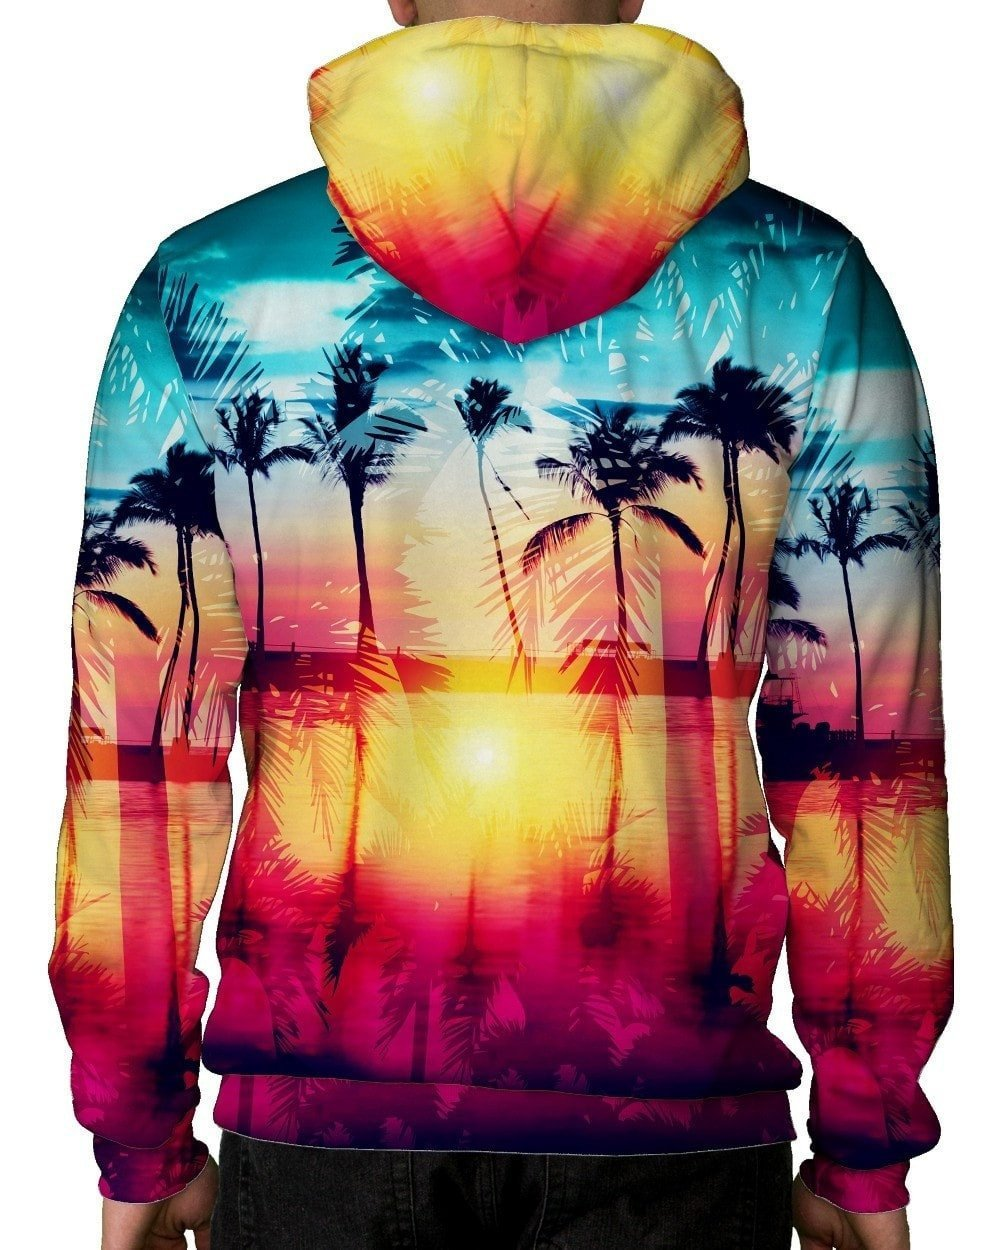 Coastal Dreams Unisex Hoodie-men's back